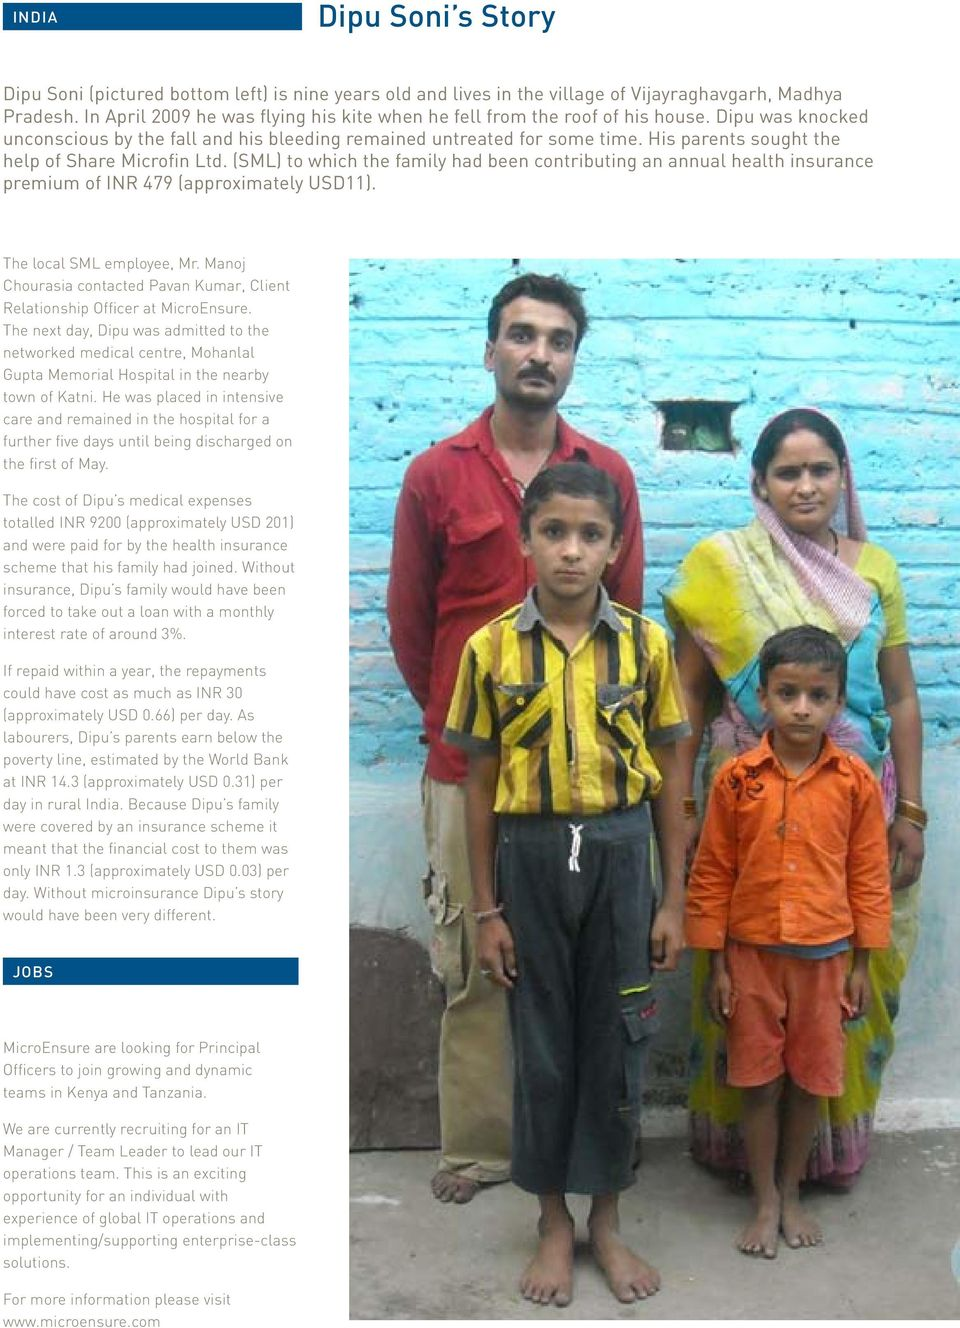 His parents sought the help of Share Microfin Ltd. (SML) to which the family had been contributing an annual health insurance premium of INR 479 (approximately USD11). The local SML employee, Mr.